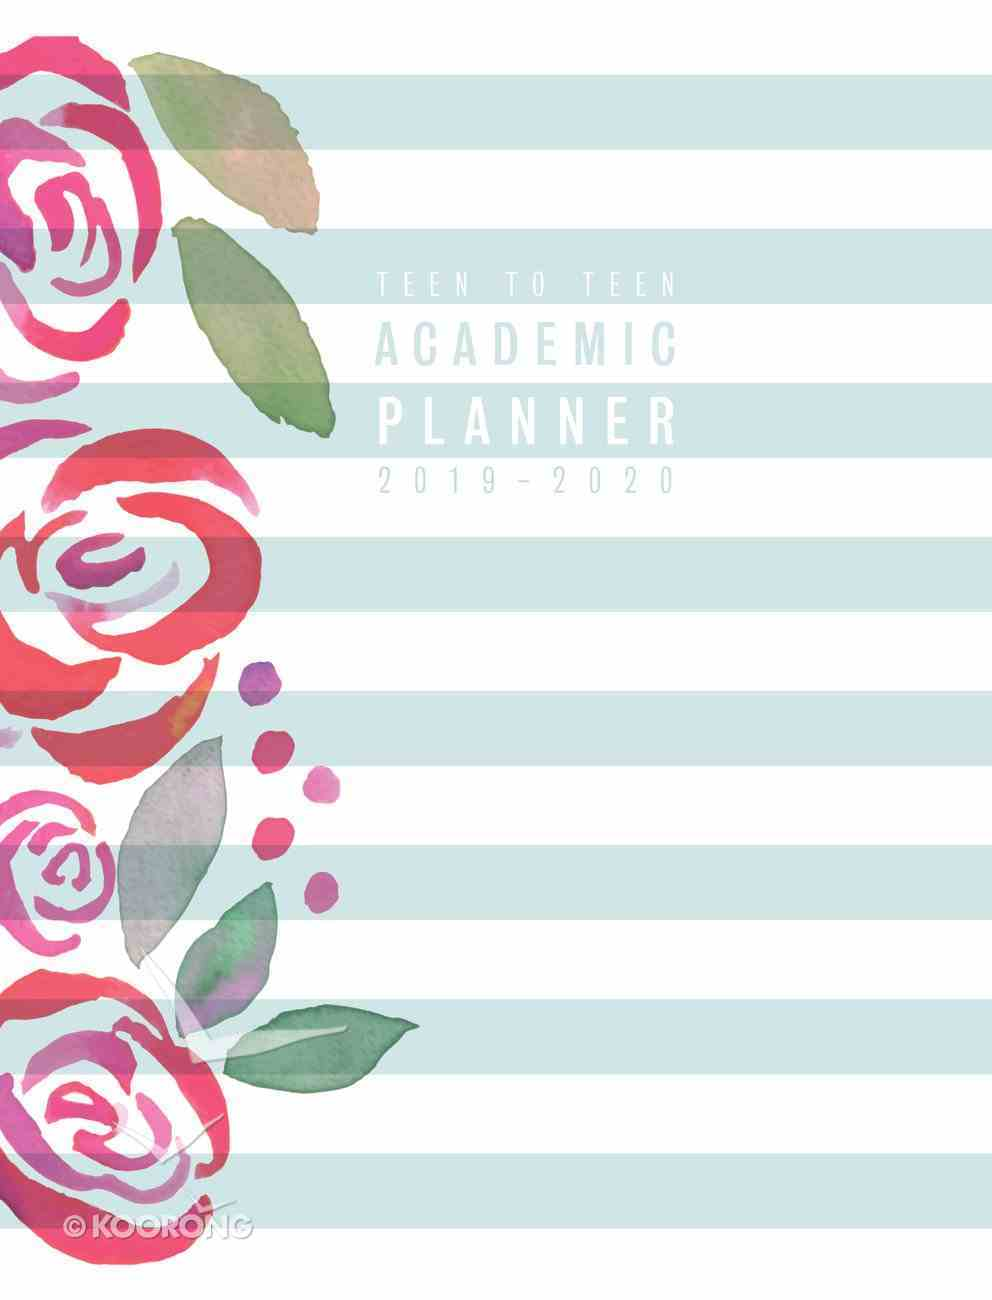 Teen to Teen Academic Diary/Planner July 2019 - June 2020, Blue Stripes/Pink Flowers, (Ages 13-18) Hardback